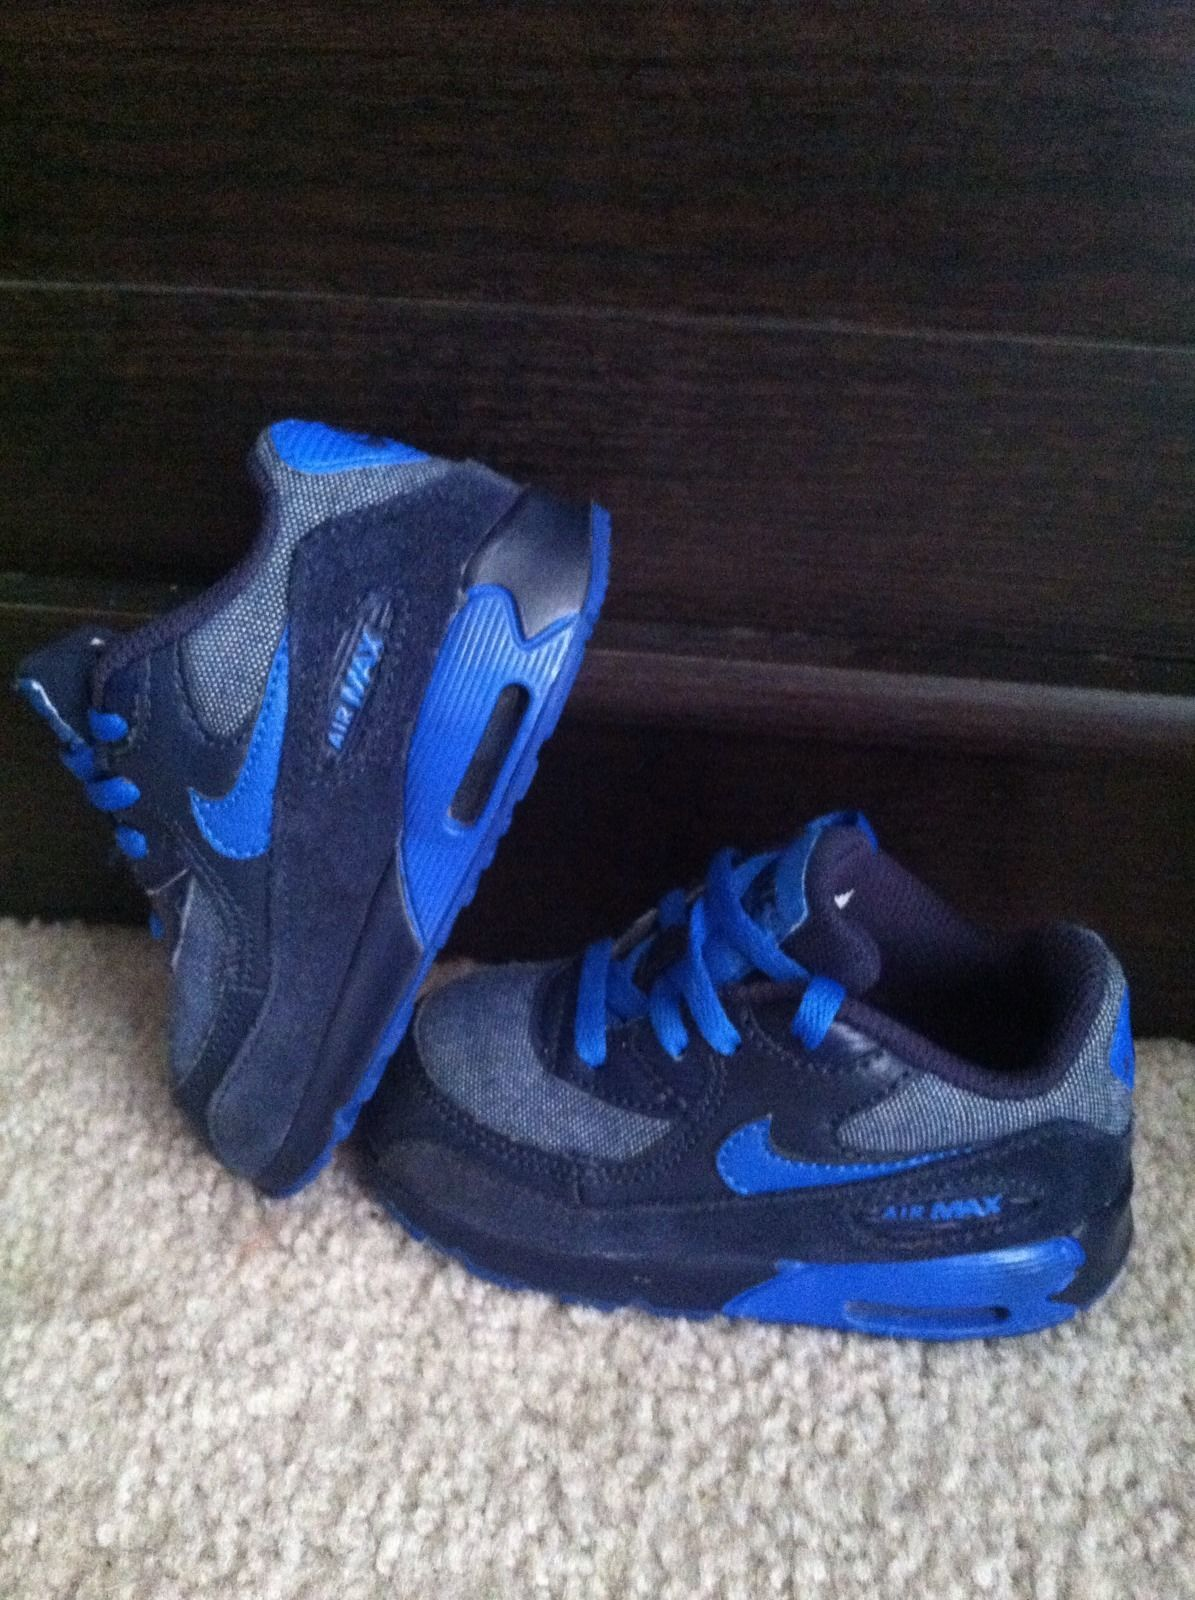 baby nikes | ♕ ℱσя ℳу ℱυтυяє ℬαвιє'ѕ ♕ | Pinterest | Babies, Babies clothes  and Clothes